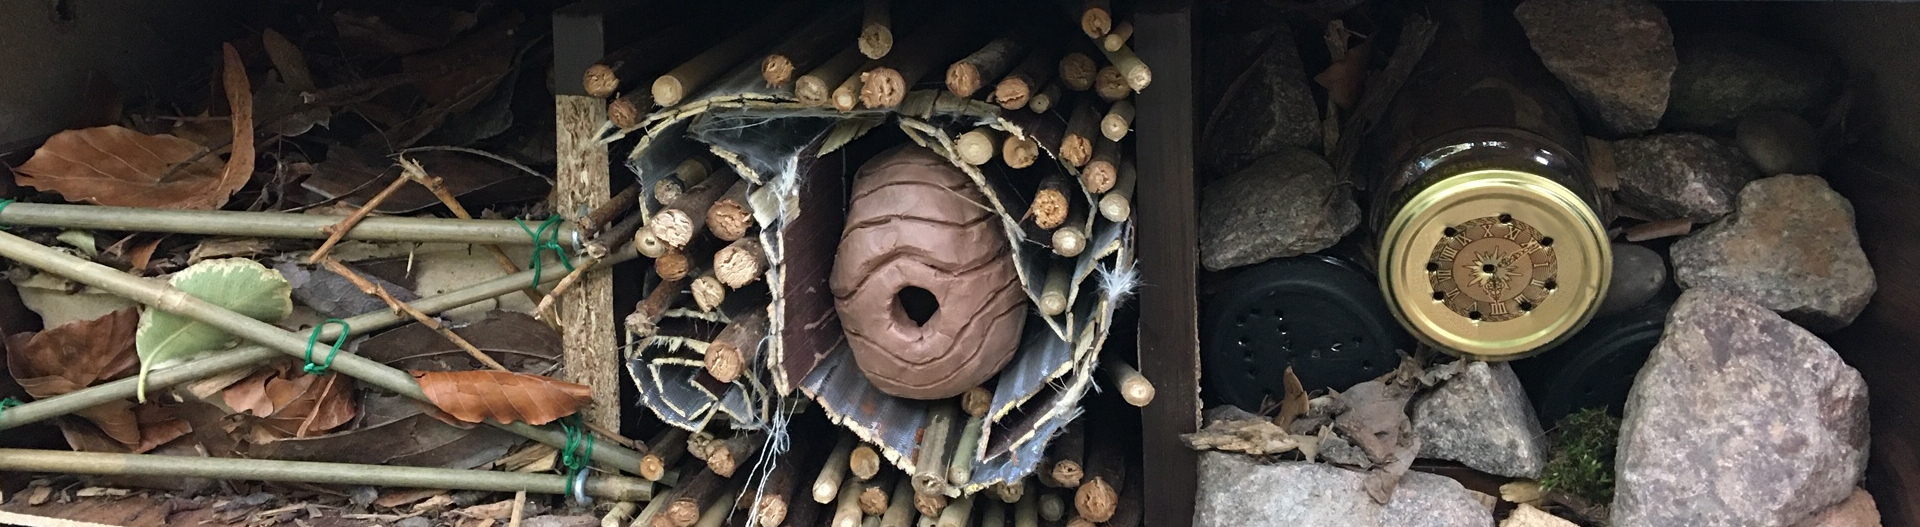 Insect hotel with three sections